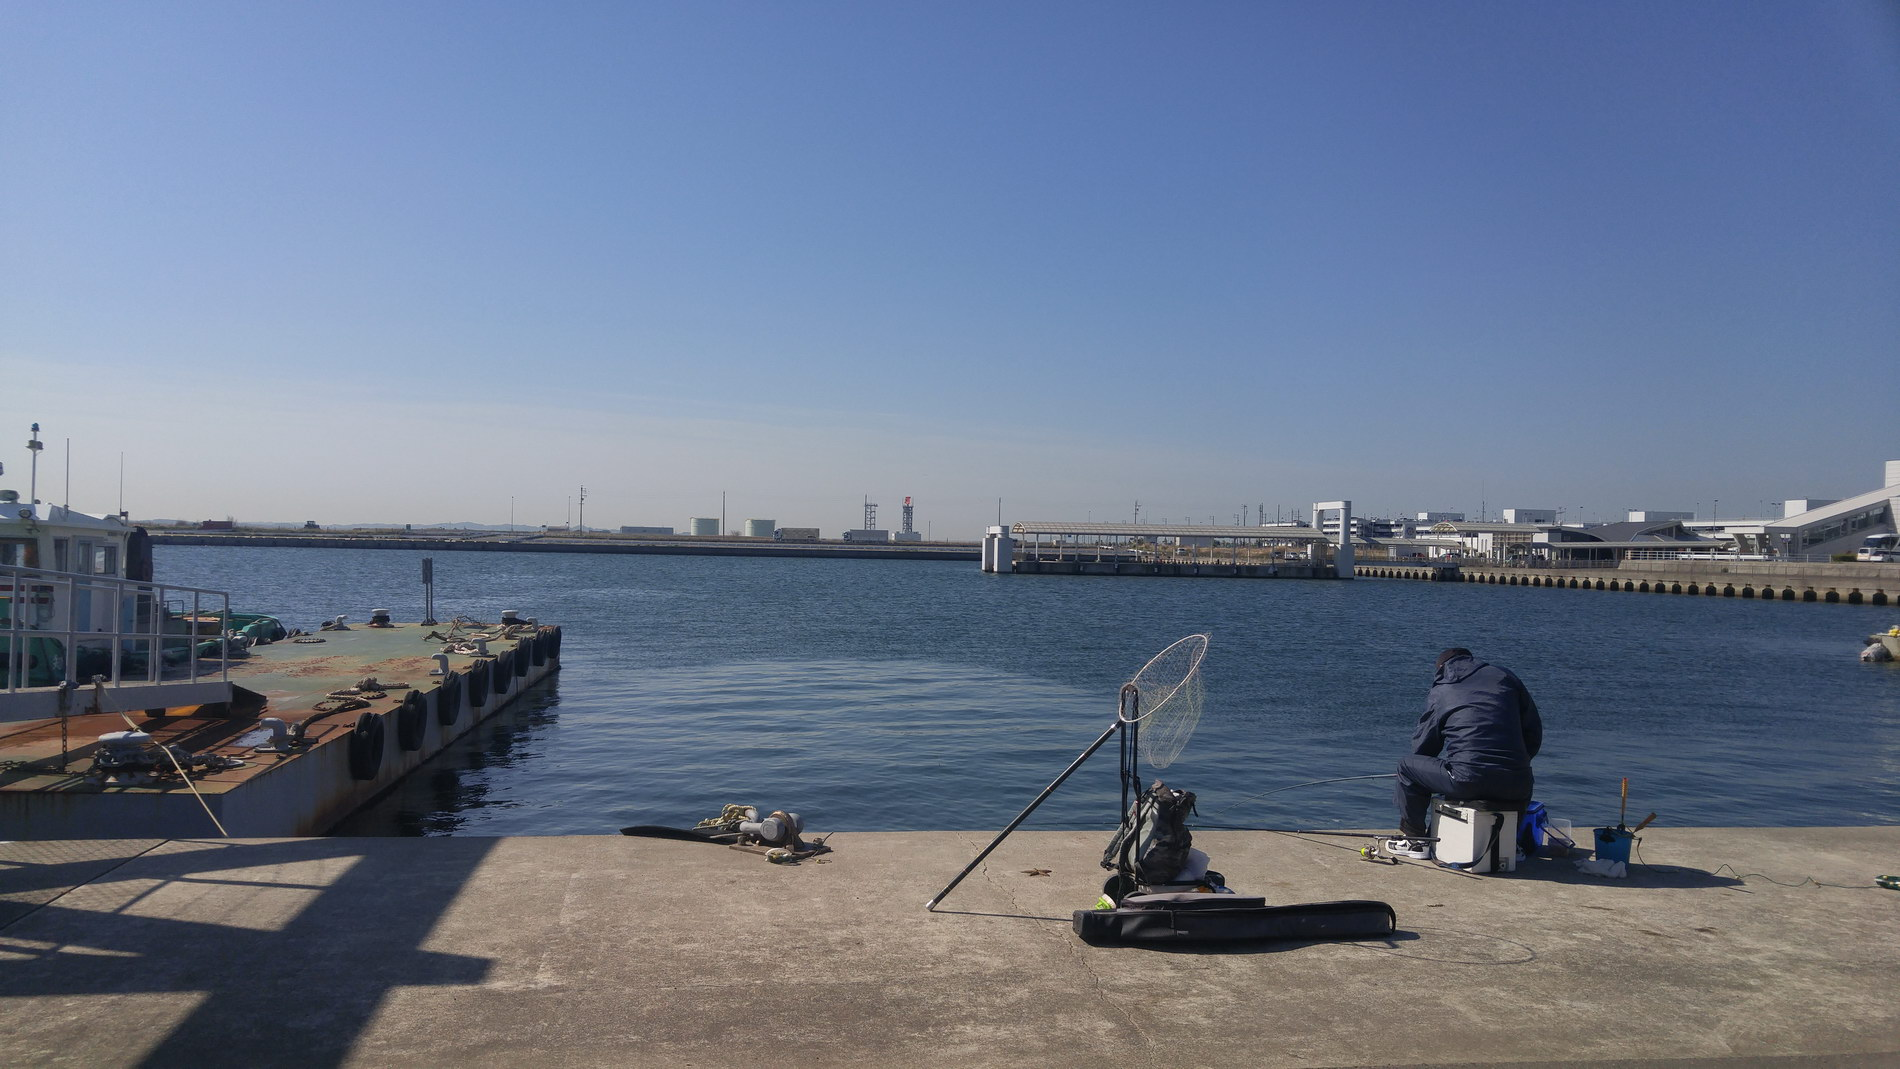 The hotel harbor looking out to Nagoya airport